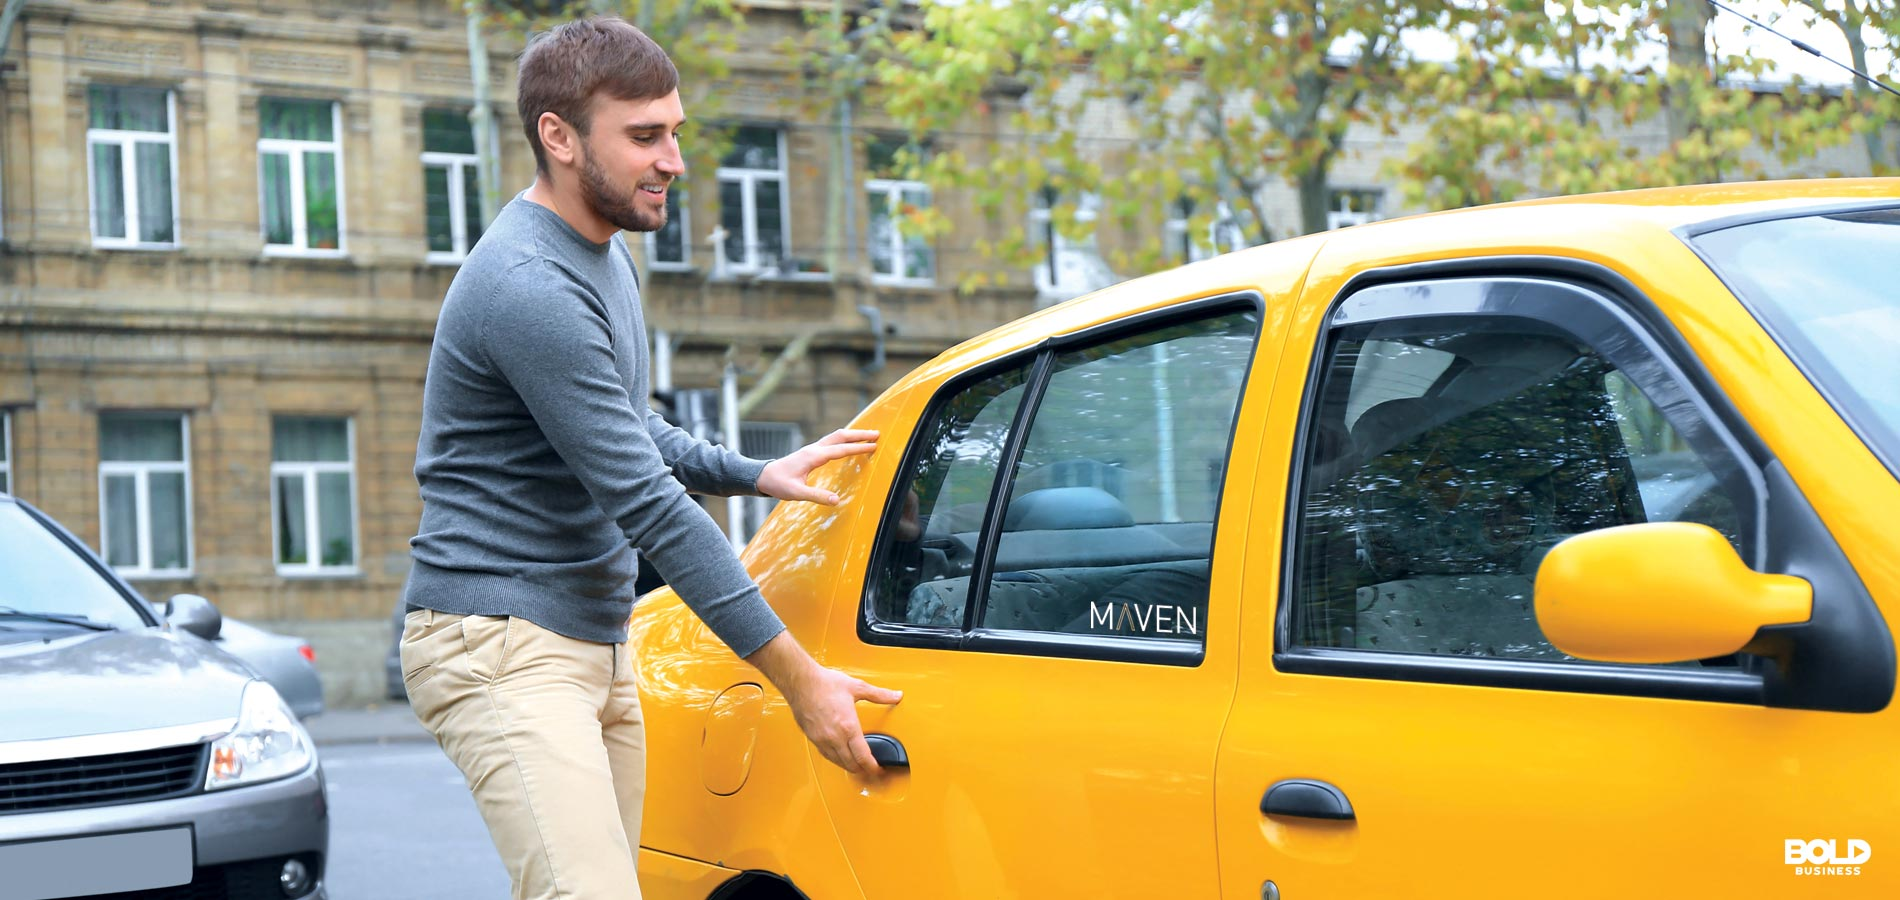 Maven Carsharing in Practice